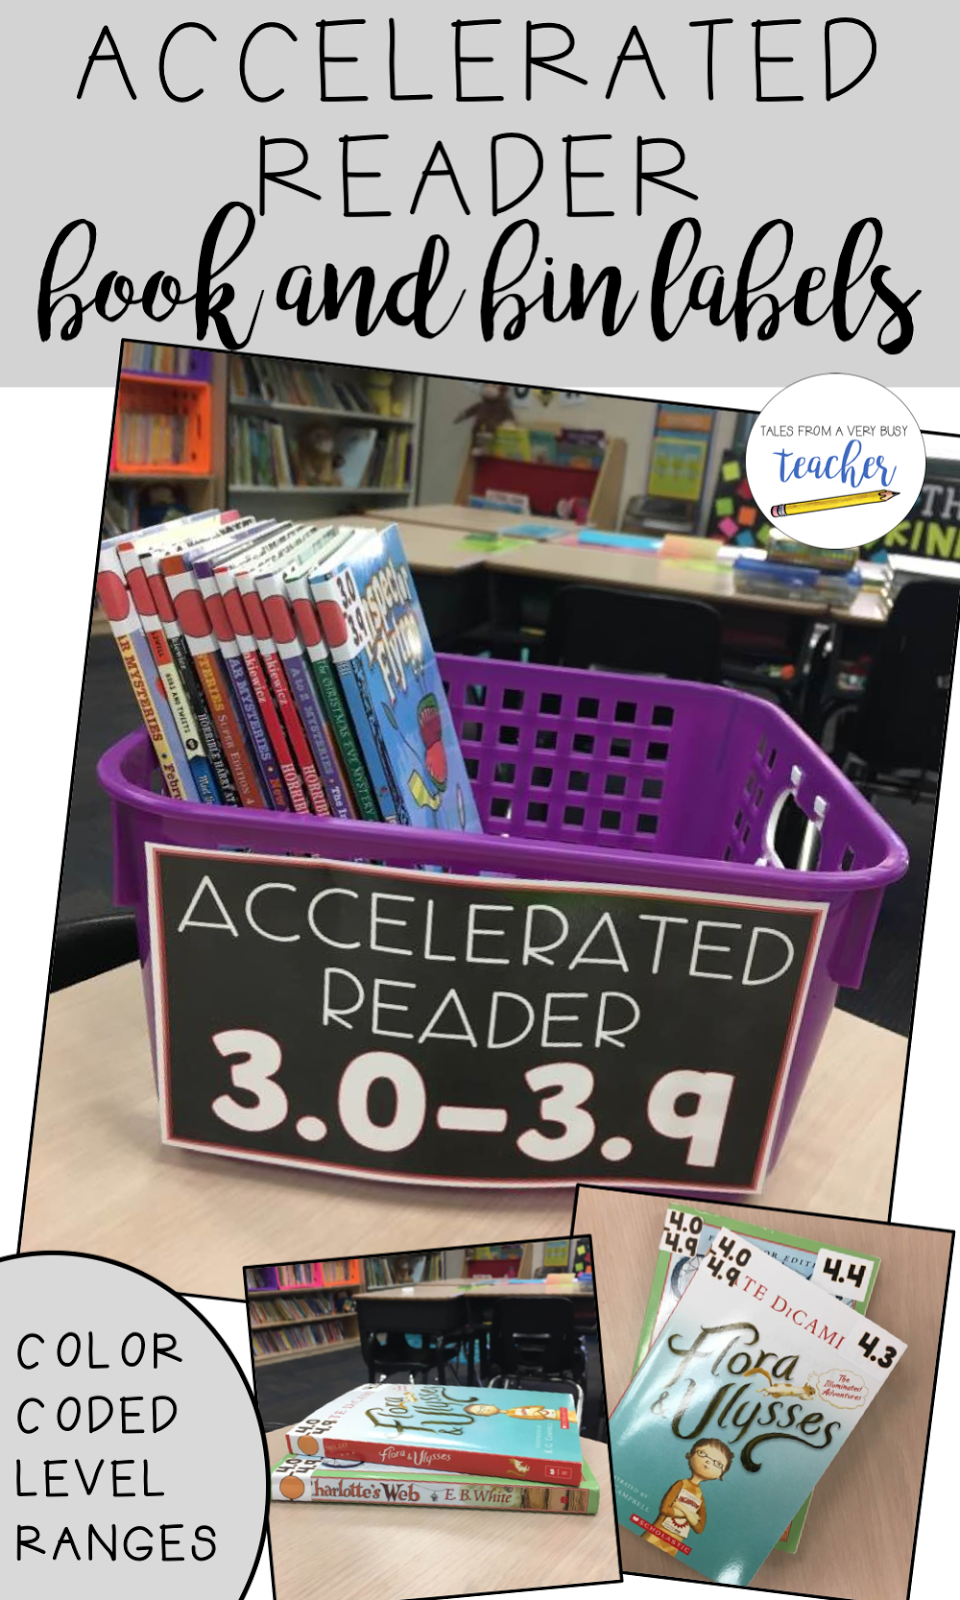 Accelerated Reader Accelerated Reader Classroom Library Books Classroom Library Organization